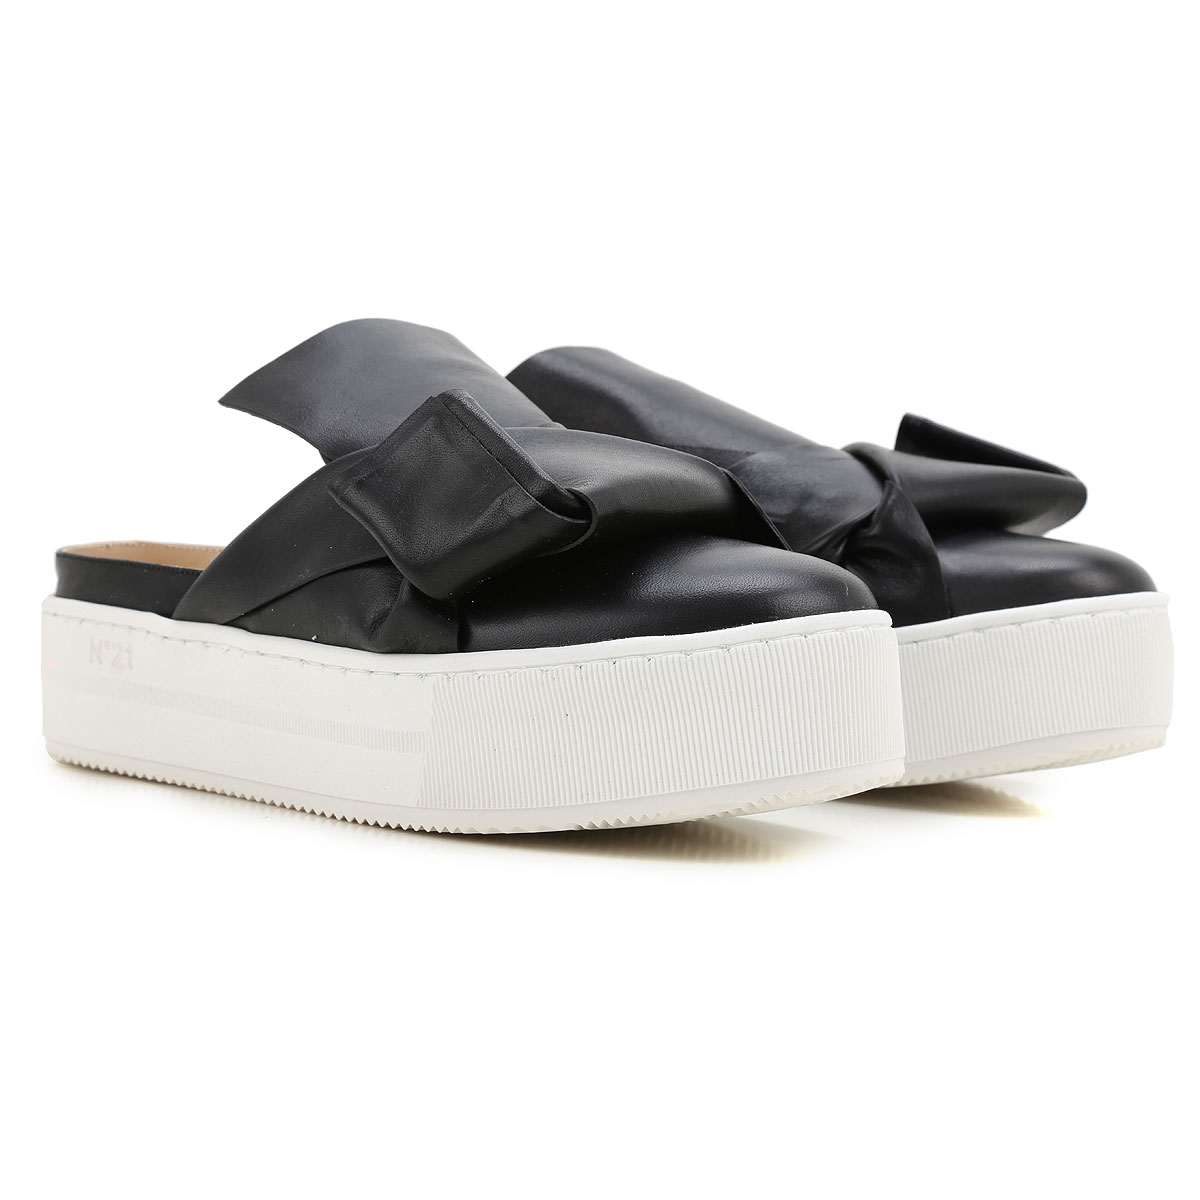 NO 21 Sandals for Women On Sale in Outlet, Black, Leather, 2019, 10 6